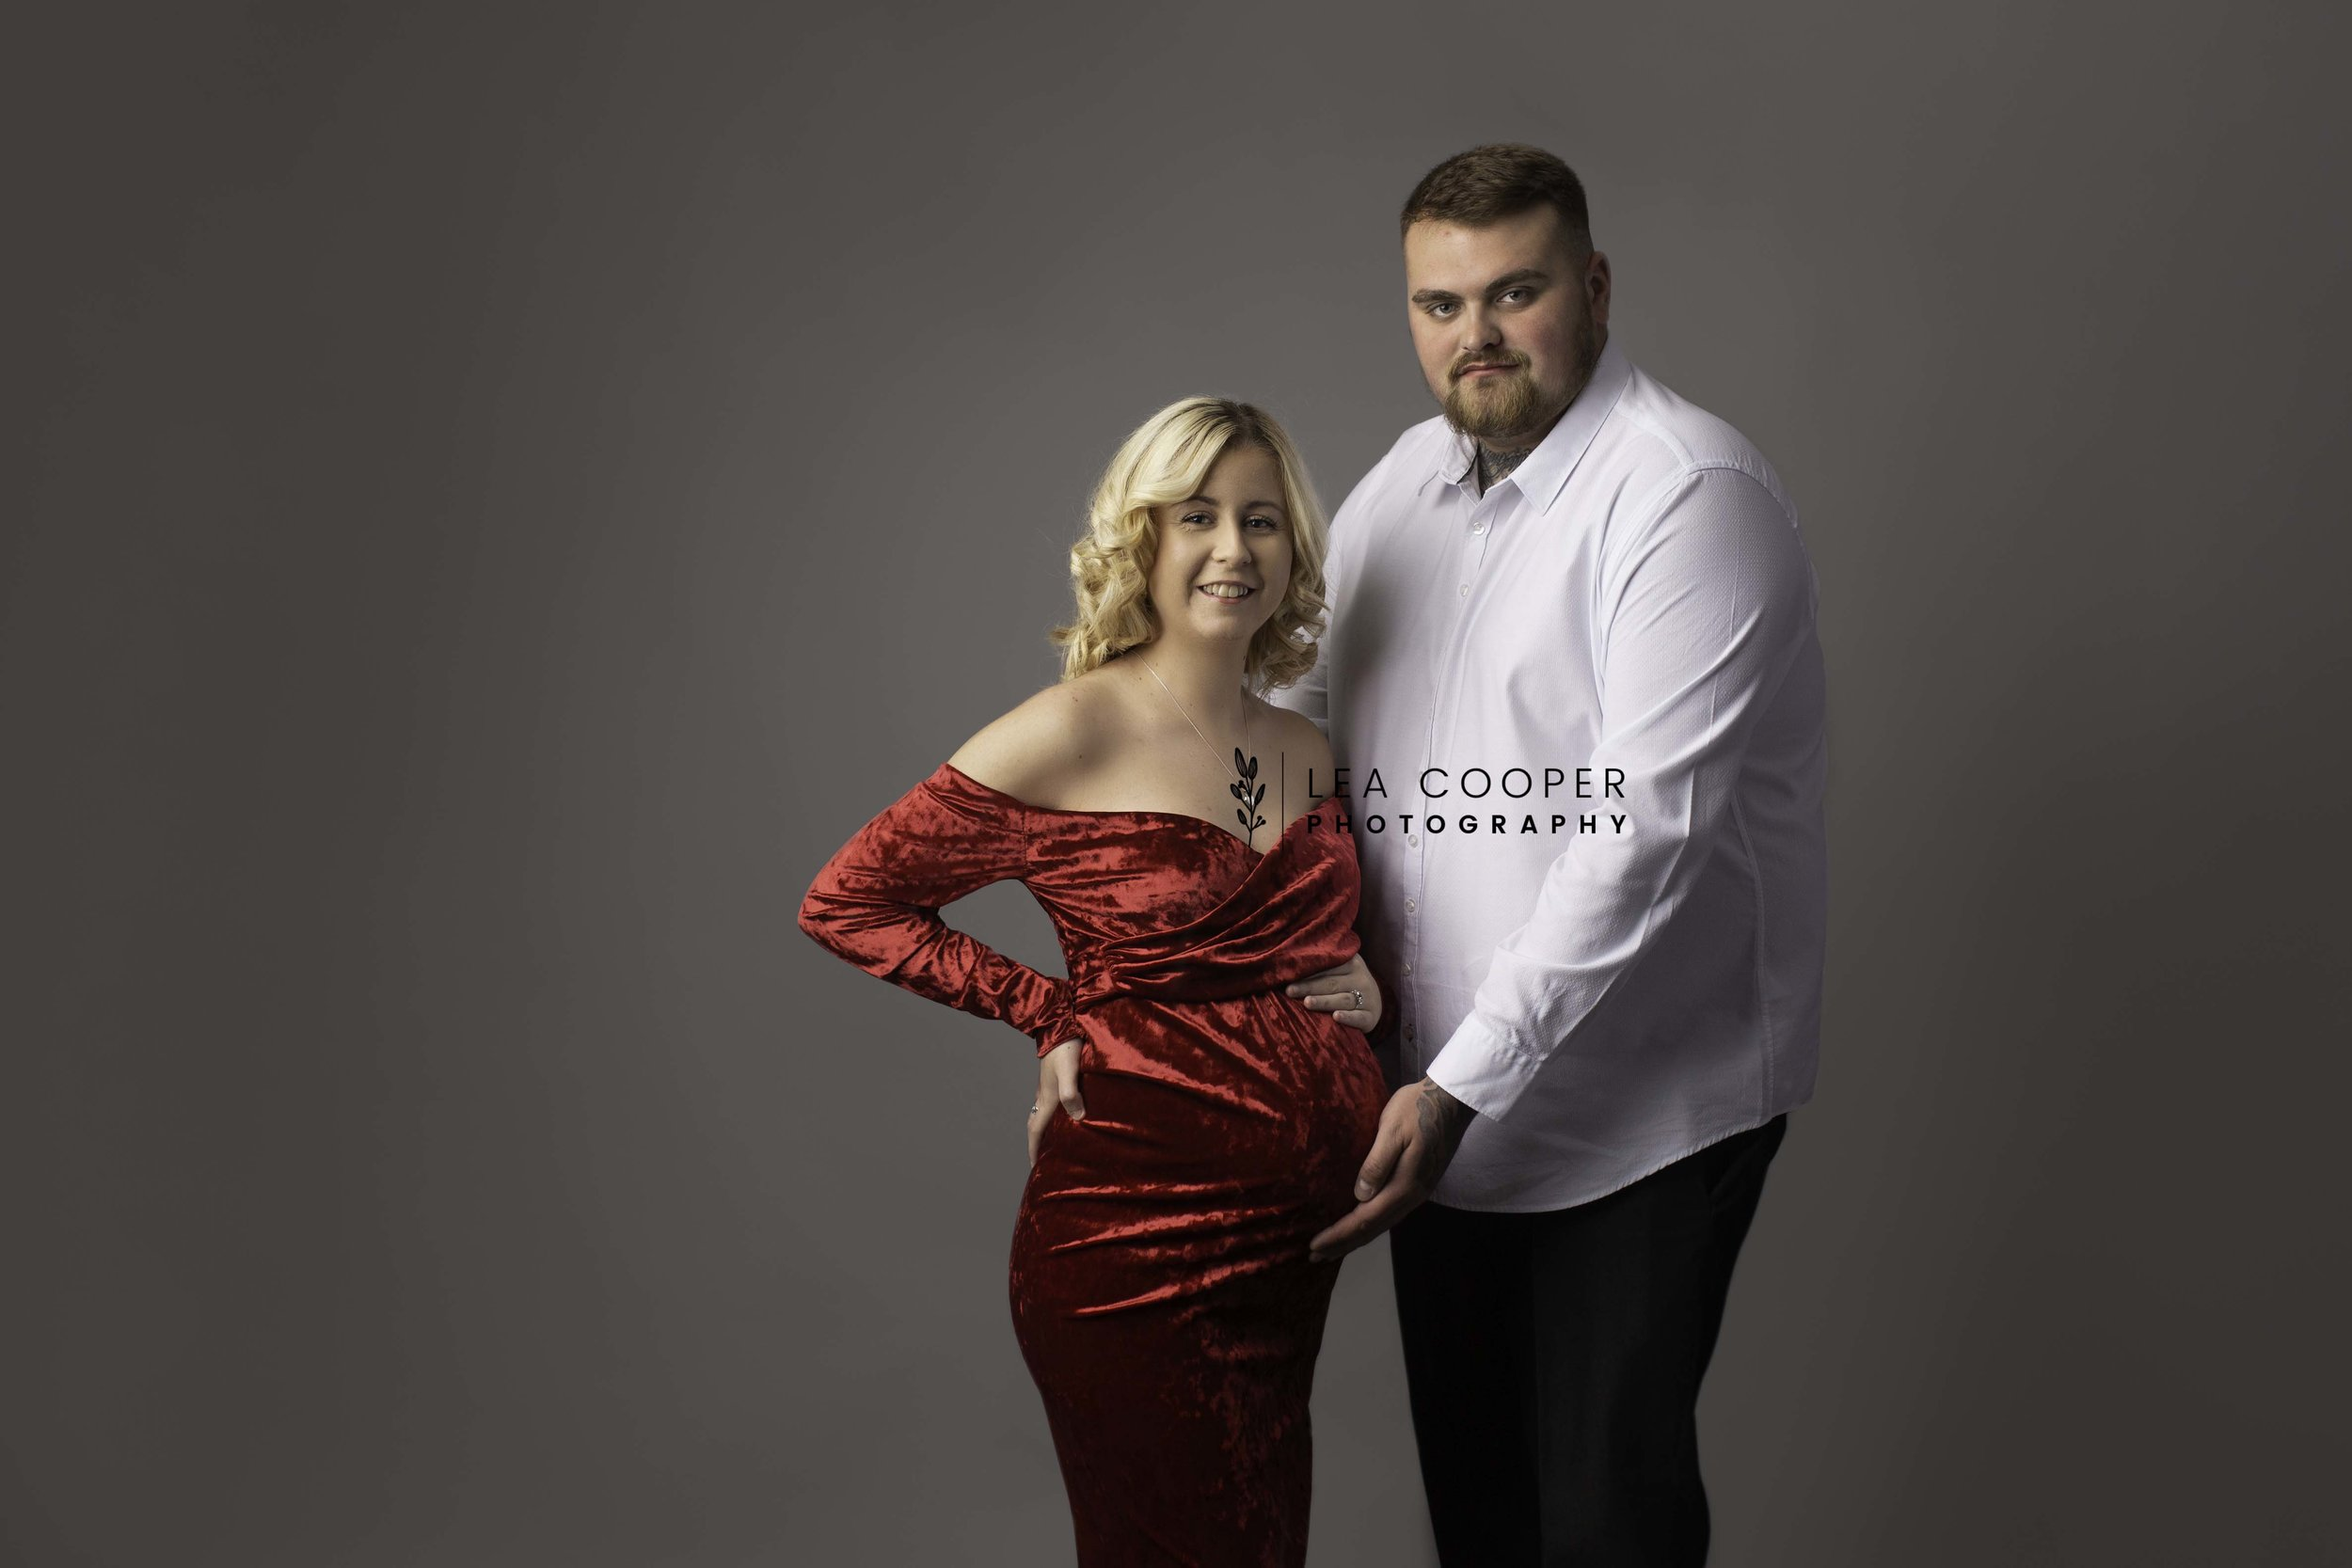 LEA COOPER PHOTOGRAPHY NEWBORN MATERNITY SESSION BABY BUMP SESSION WILLENHALL WEST MIDLANDS WALSALL WEDNESBURY UK6.jpg